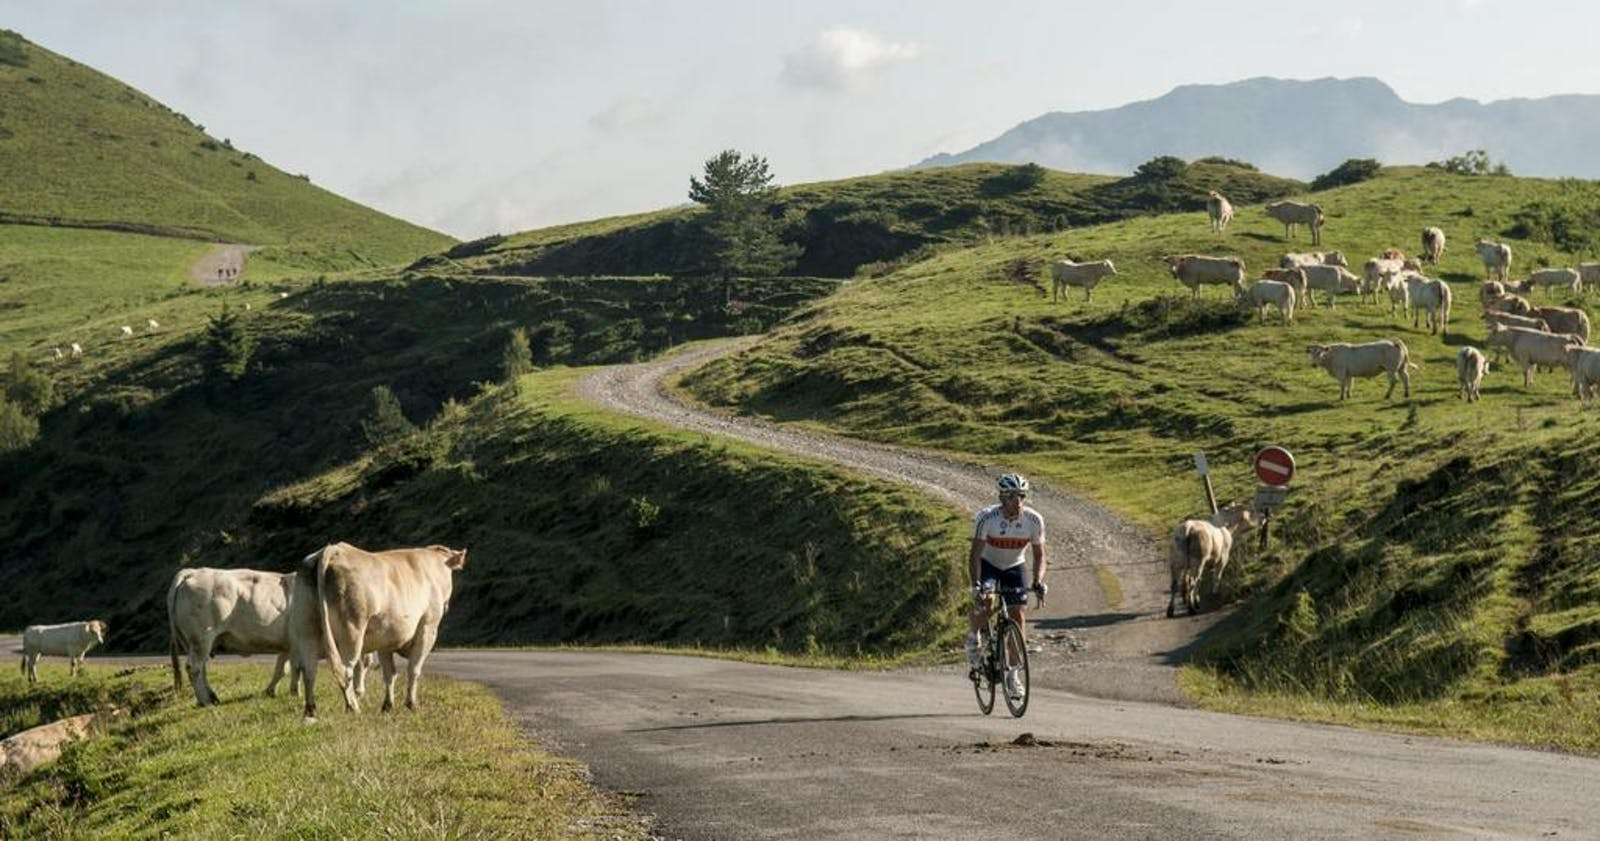 Thomson,Dolomites,Alps,Pyrenees,Cycling Trips,Bucket list,Trans Challenge